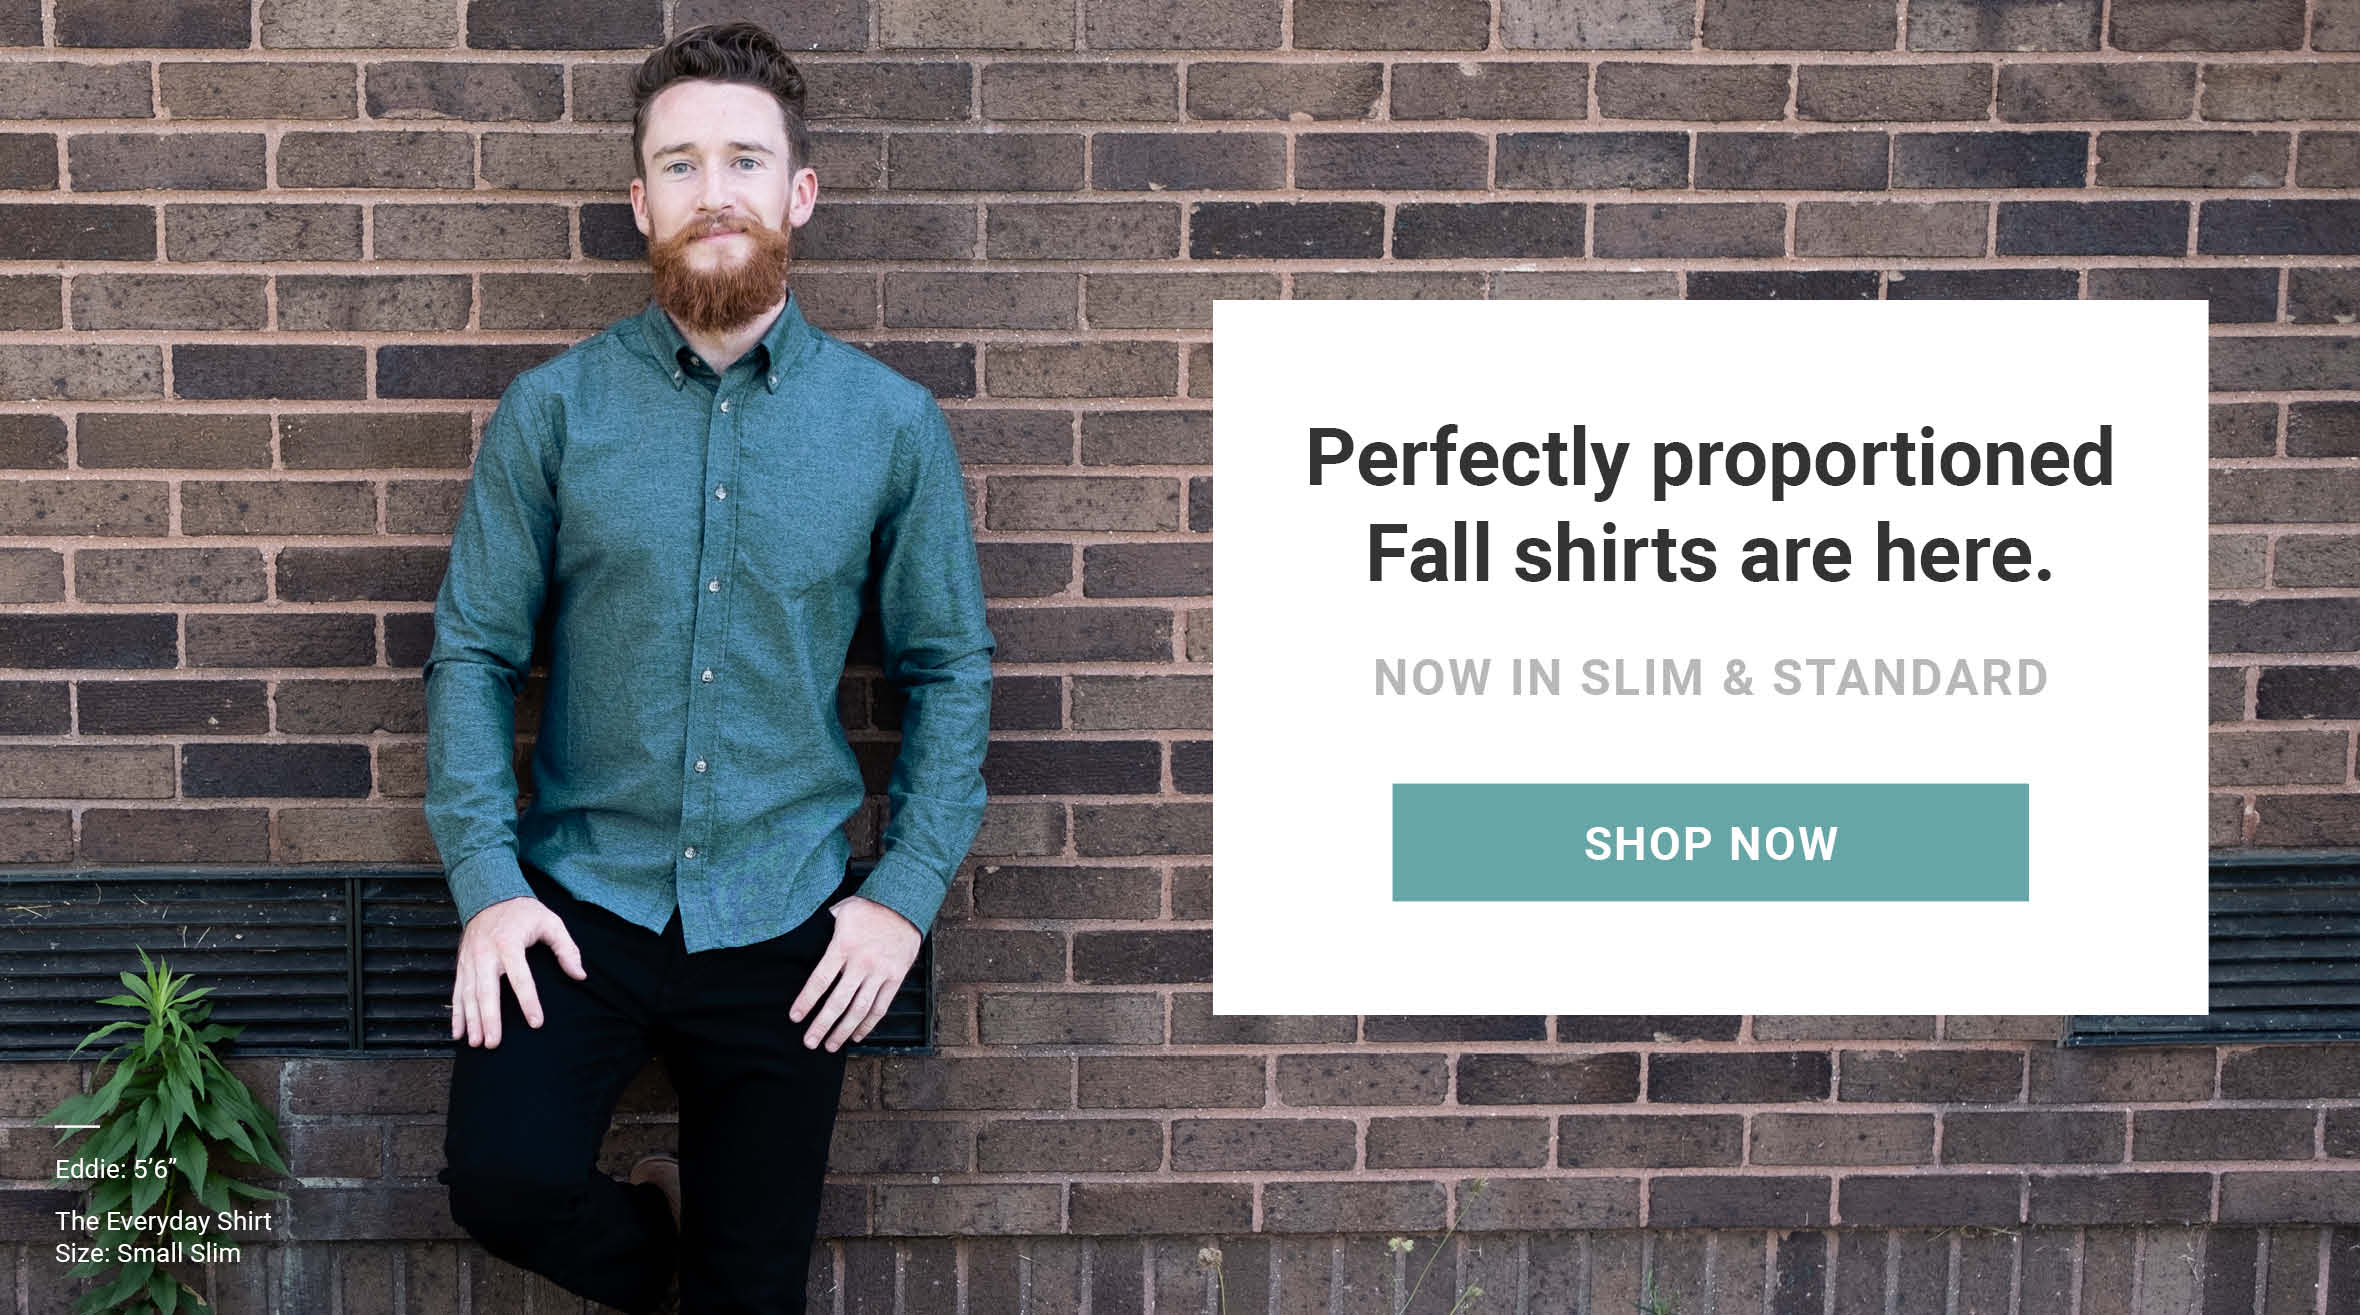 Perfectly proportioned Fall shirts are here. Now in slim and Standard. Shop now!